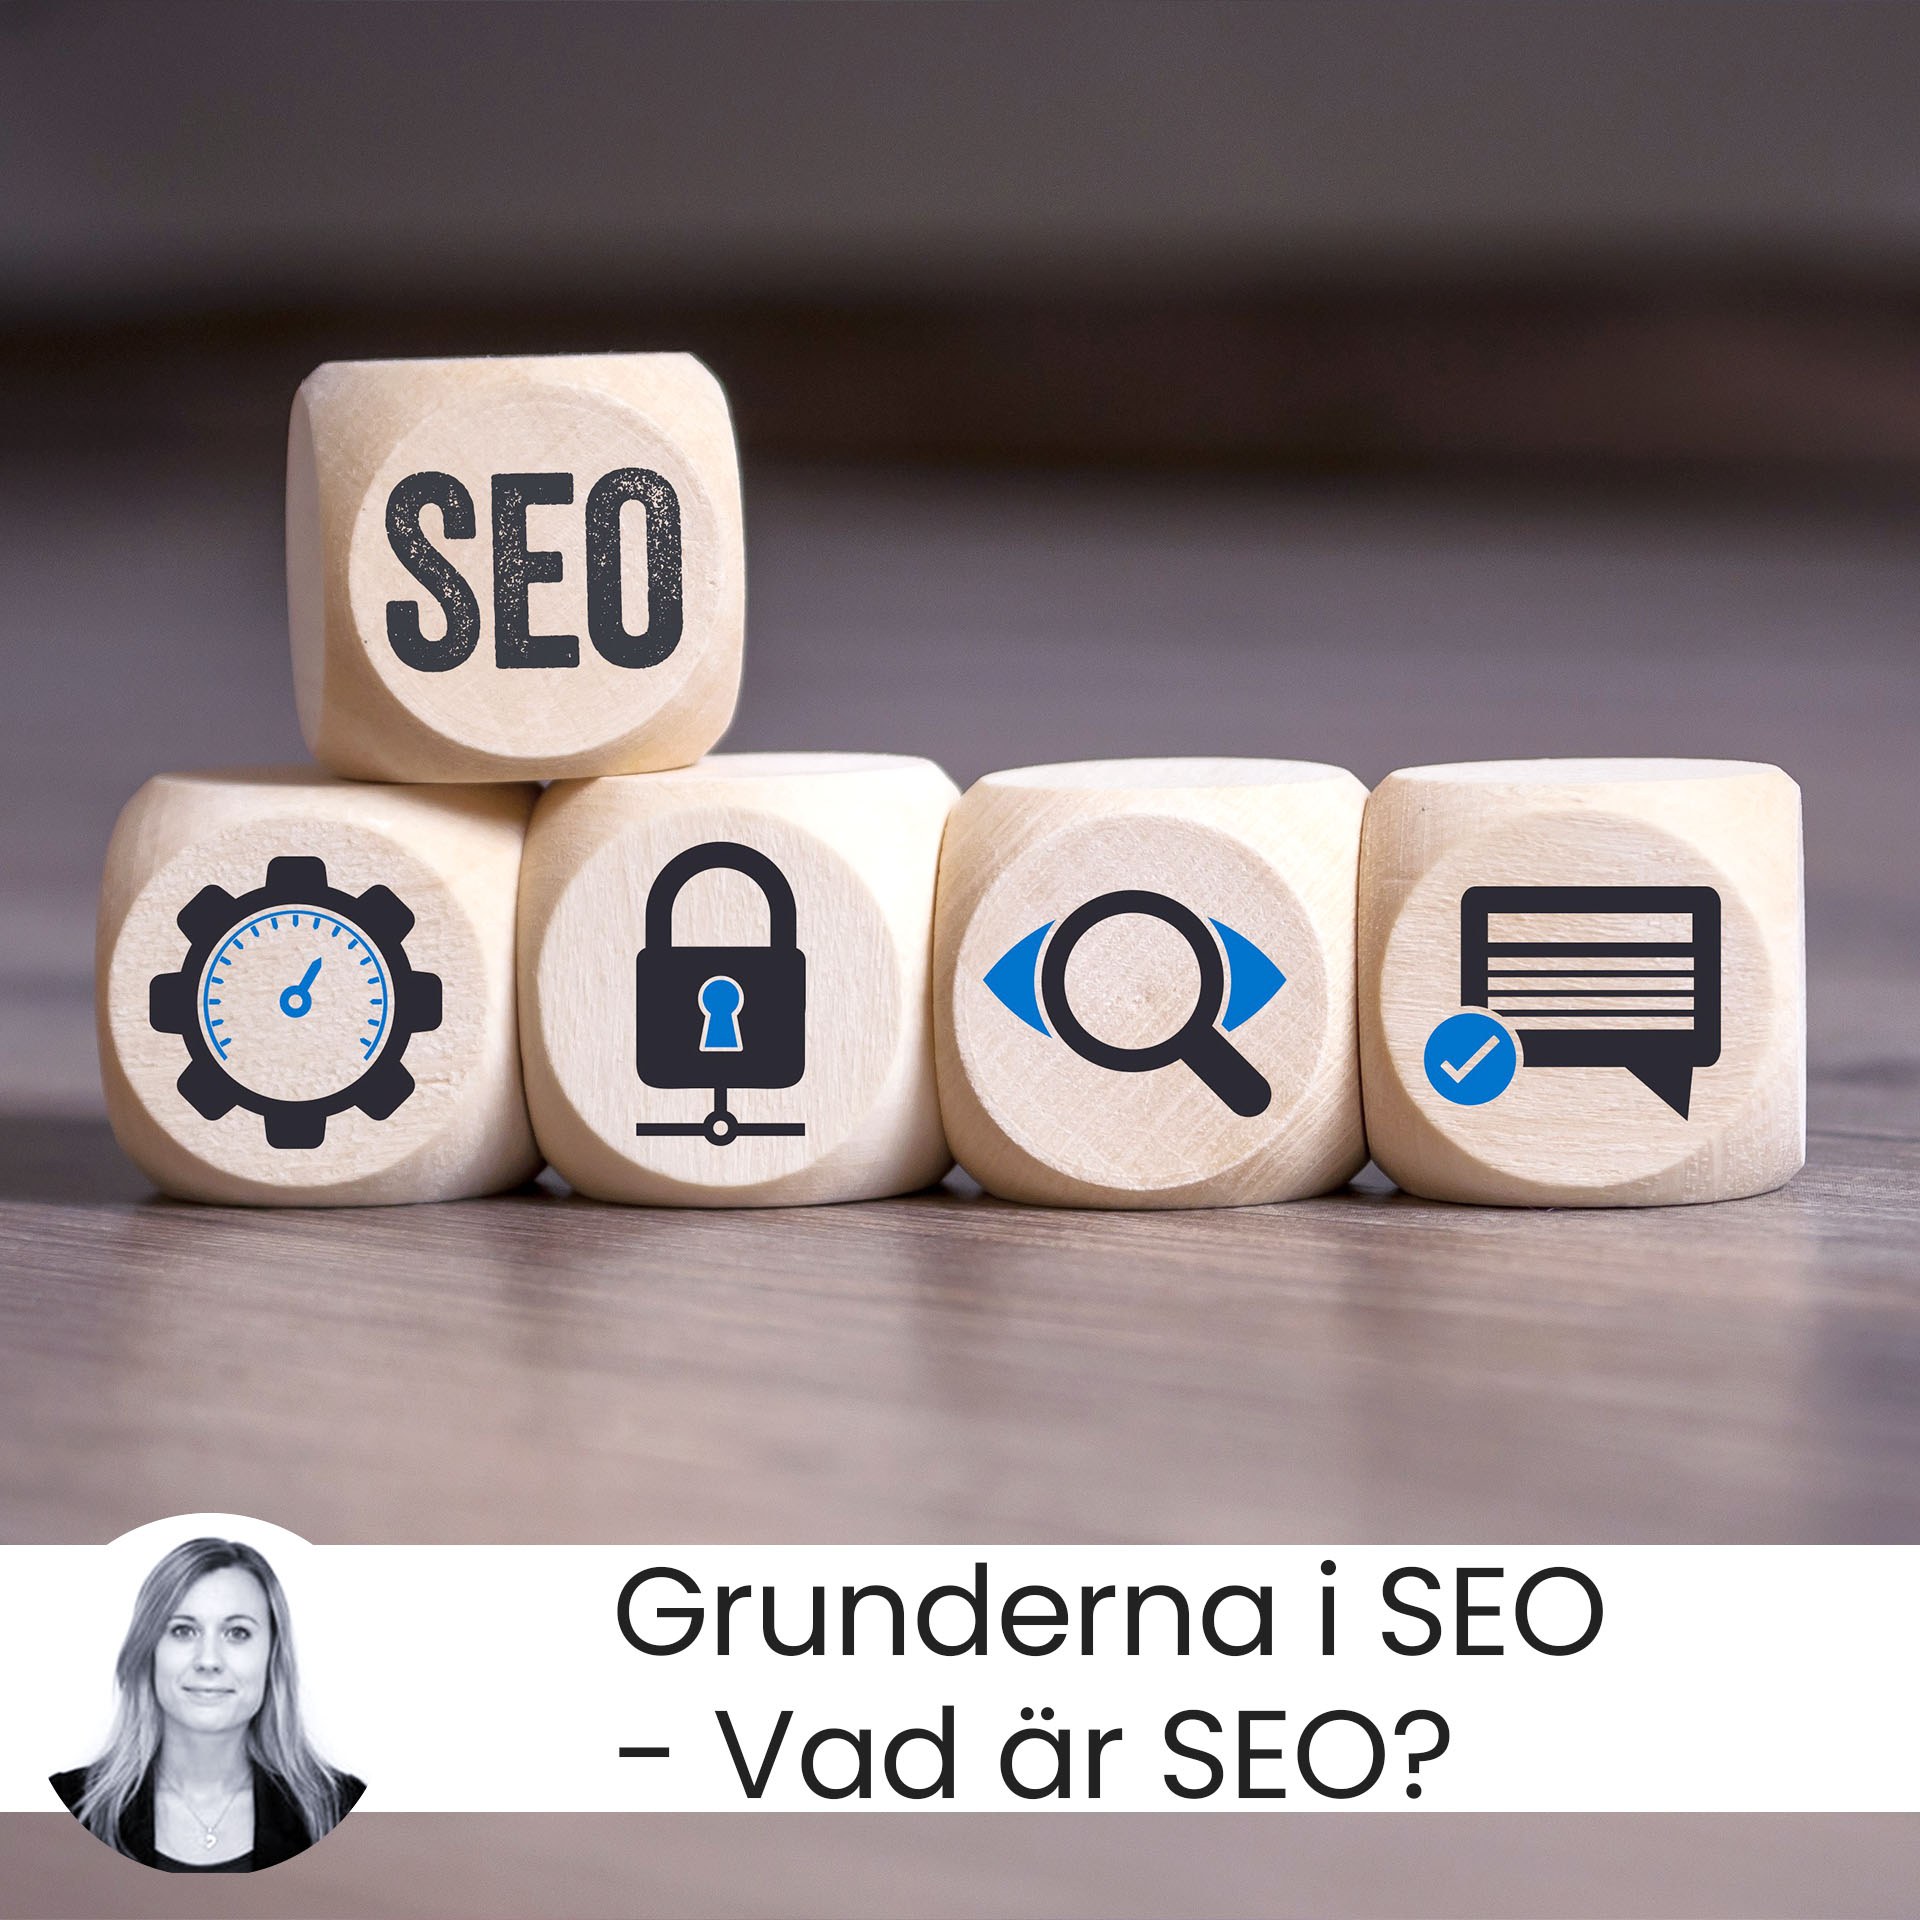 grunderna i seo-wordpress-34